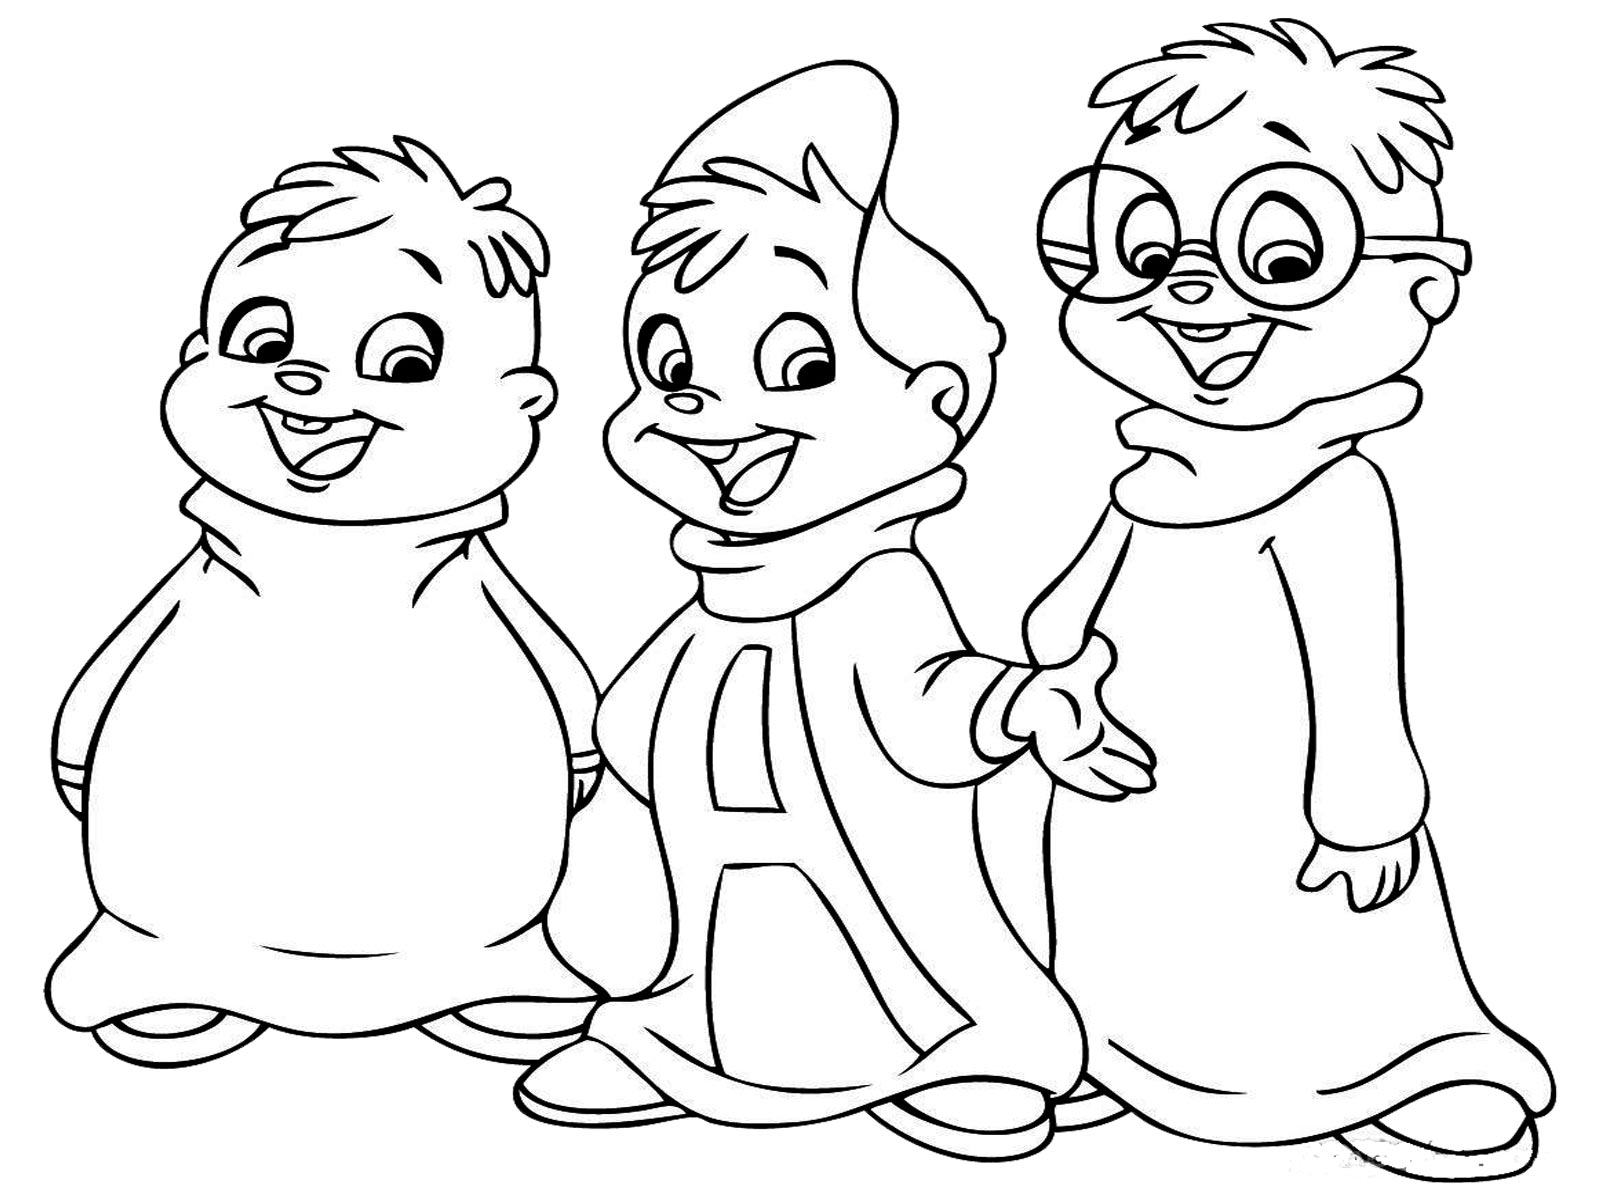 childrens day coloring pages - Coloring Sheet For Kids